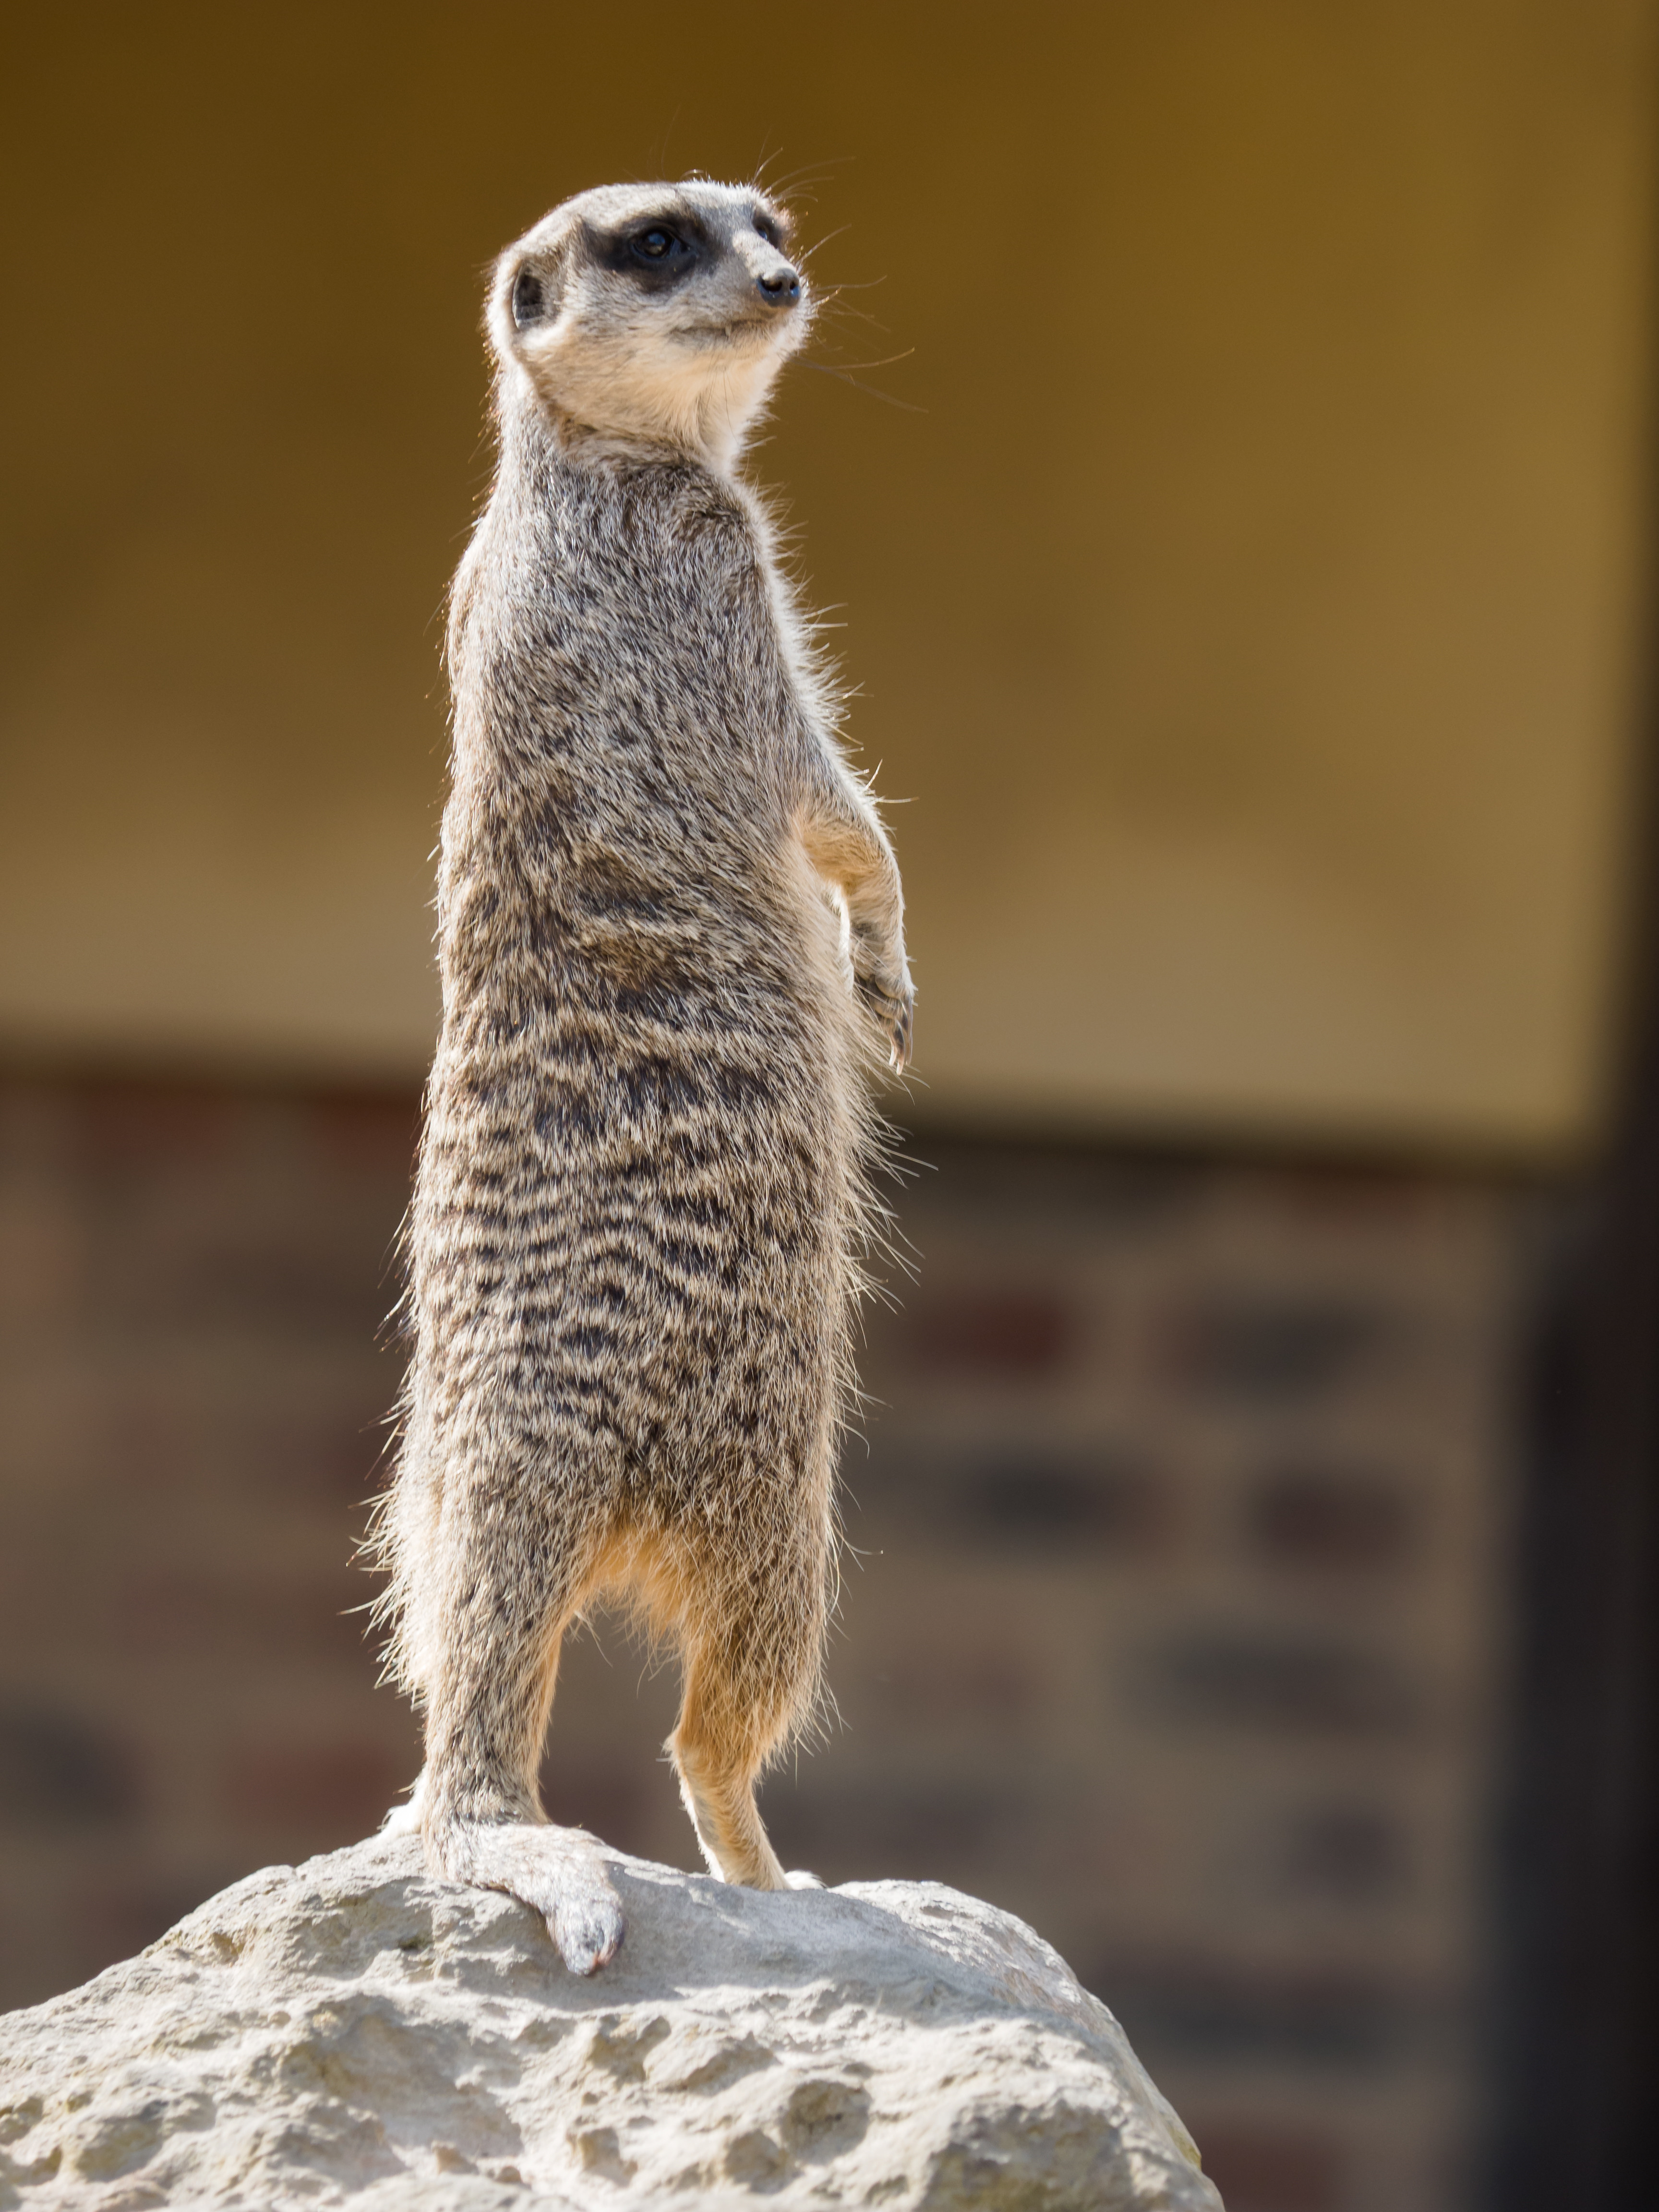 108930 download wallpaper Animals, Meerkat, Surikat, Animal, Sight, Opinion, Funny screensavers and pictures for free